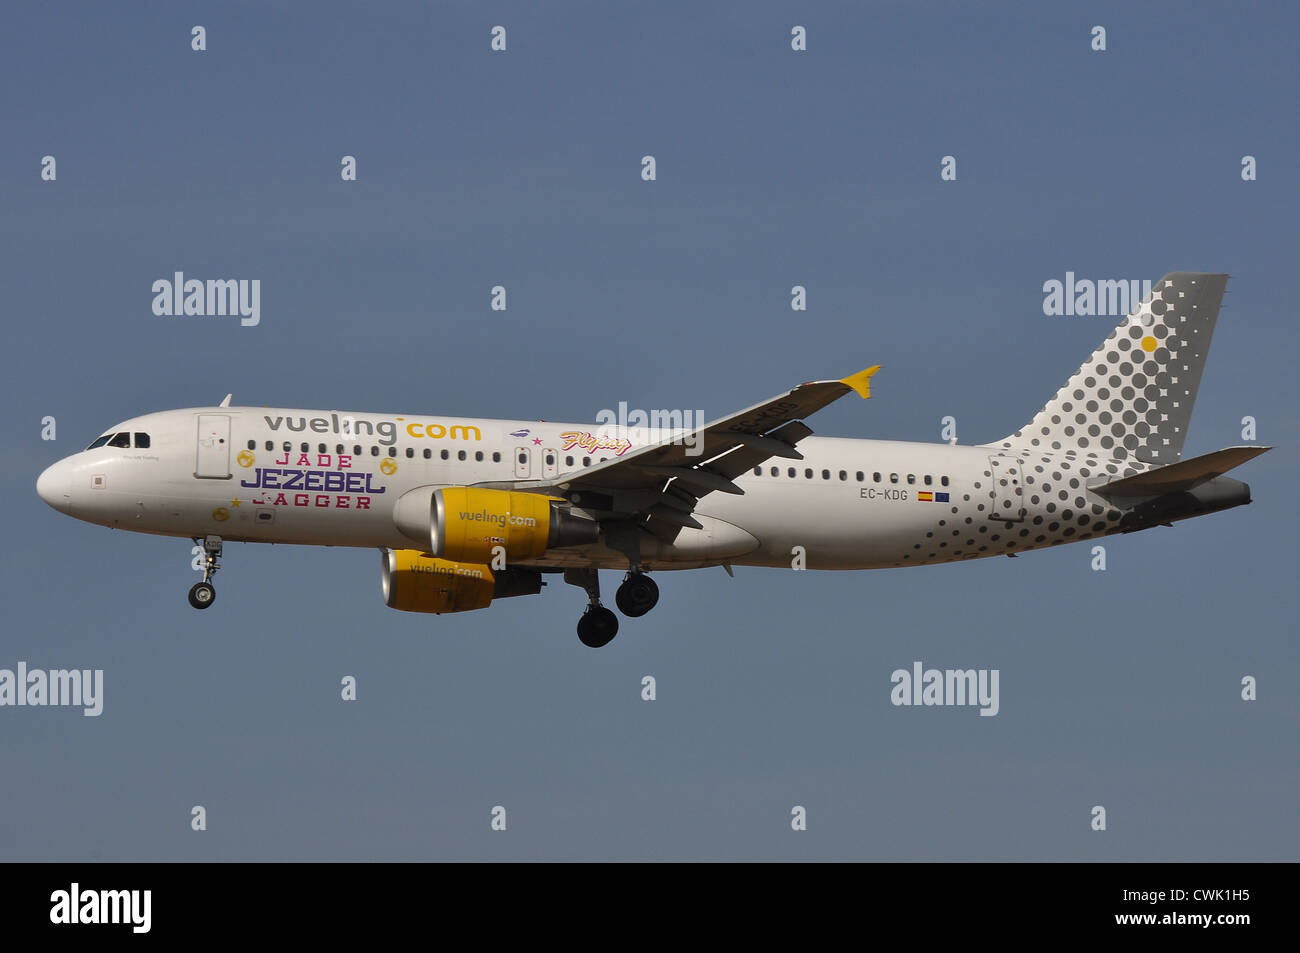 Airbus A320 Vueling Airlines - Stock Image